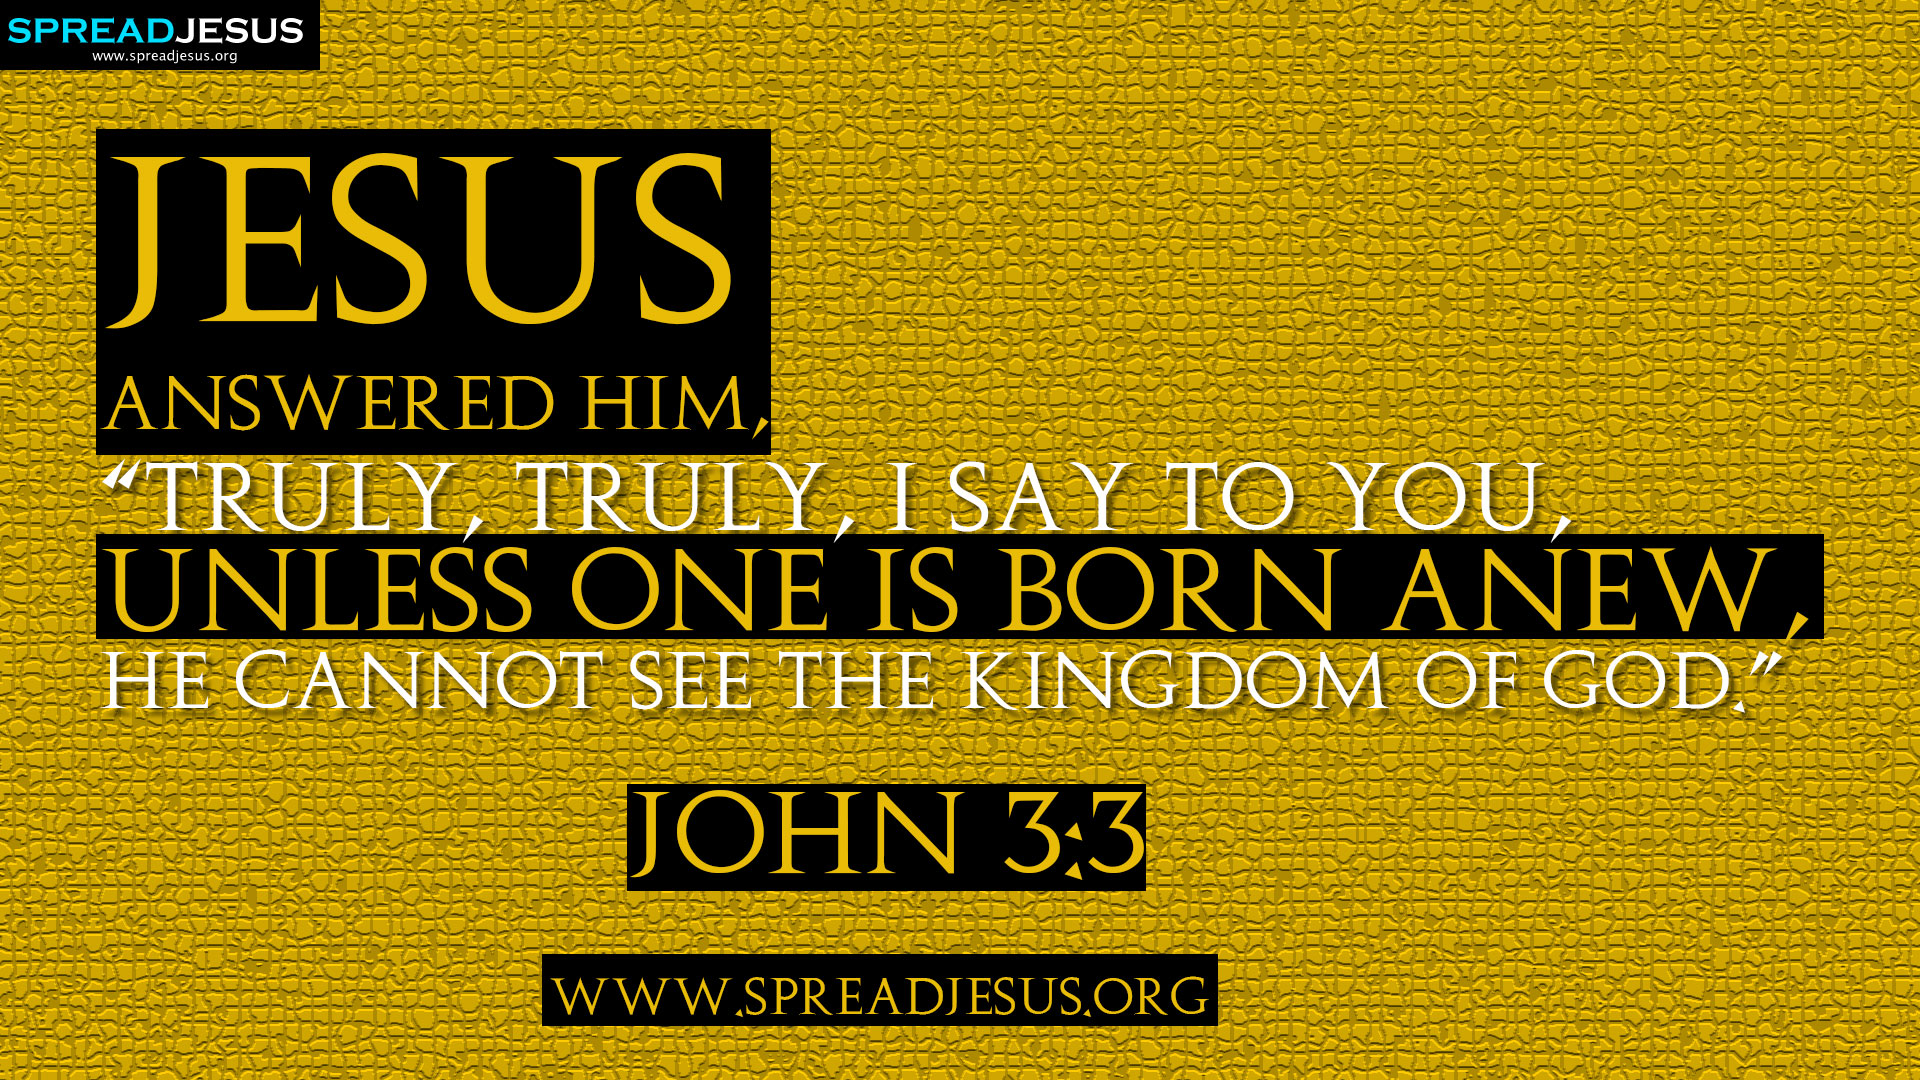 BIBLE QUOTES HD WALLPAPERS  JOHN 3:3